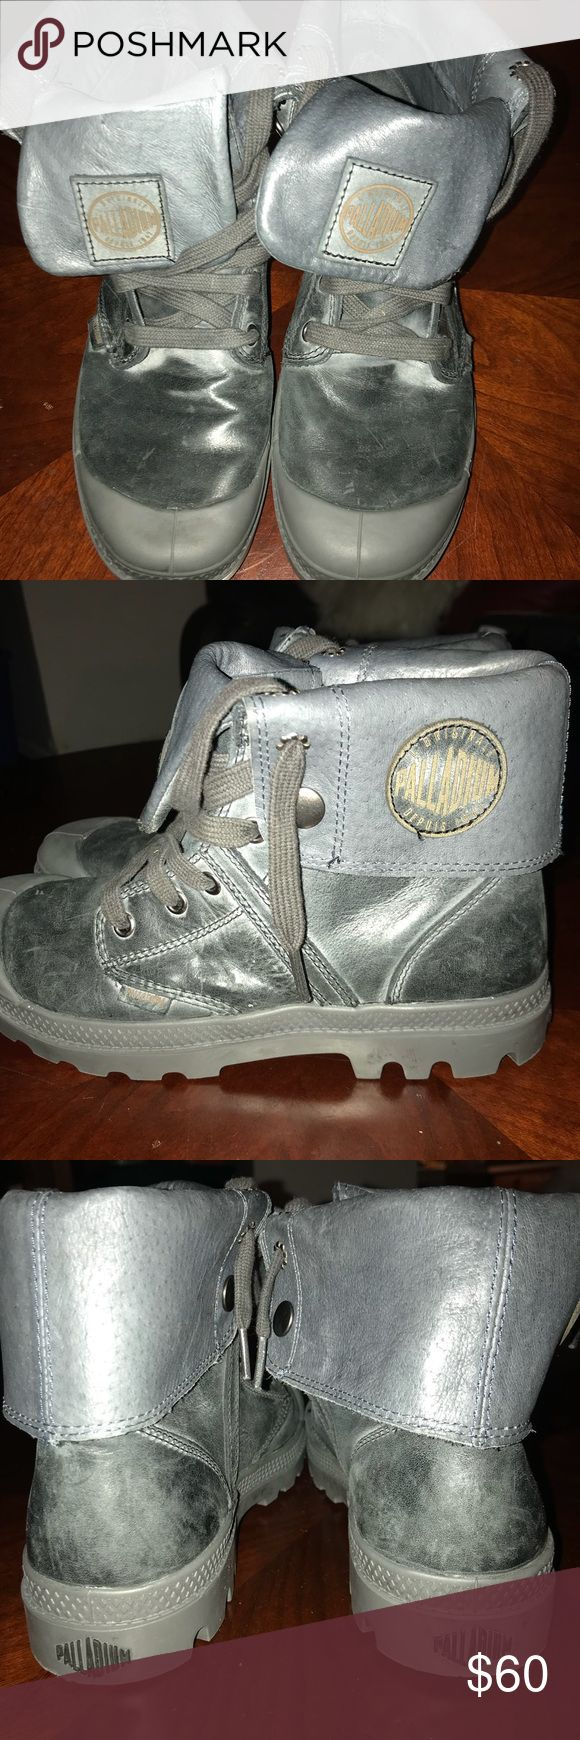 Palladium Women boots😍 Distressed gray winter boots... warm... gently used for one winter ...lightweight...great condition 😍 Palladium Shoes Winter & Rain Boots